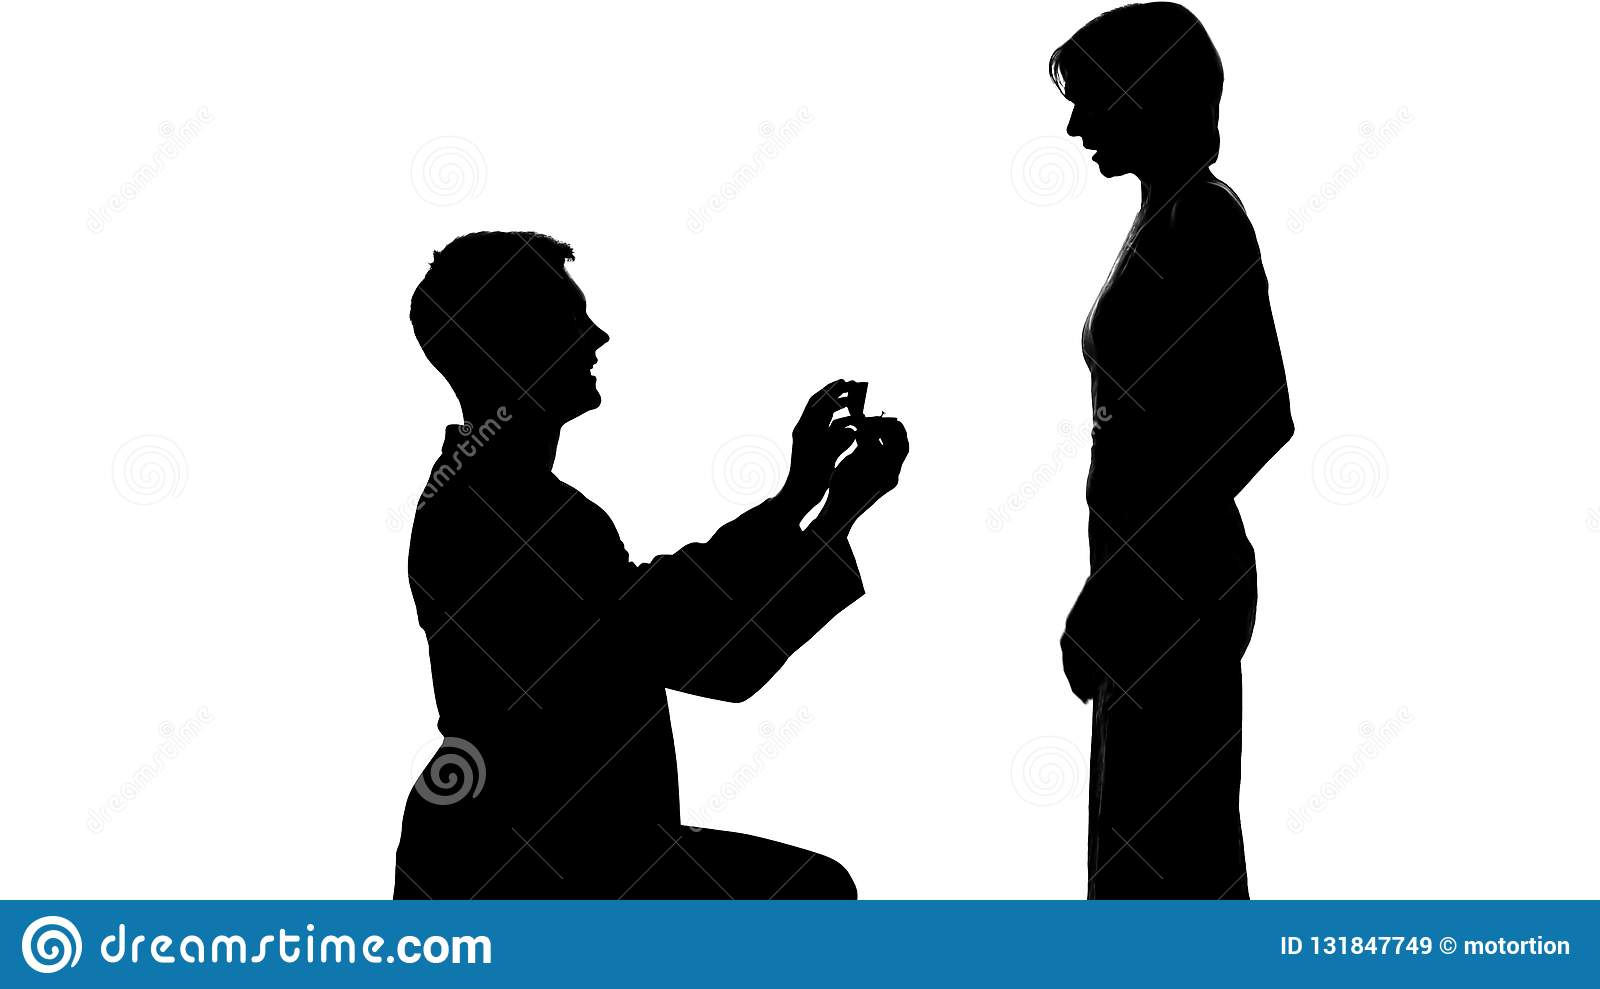 Young man shadow making proposal to lady, marriage offer, romantic relations